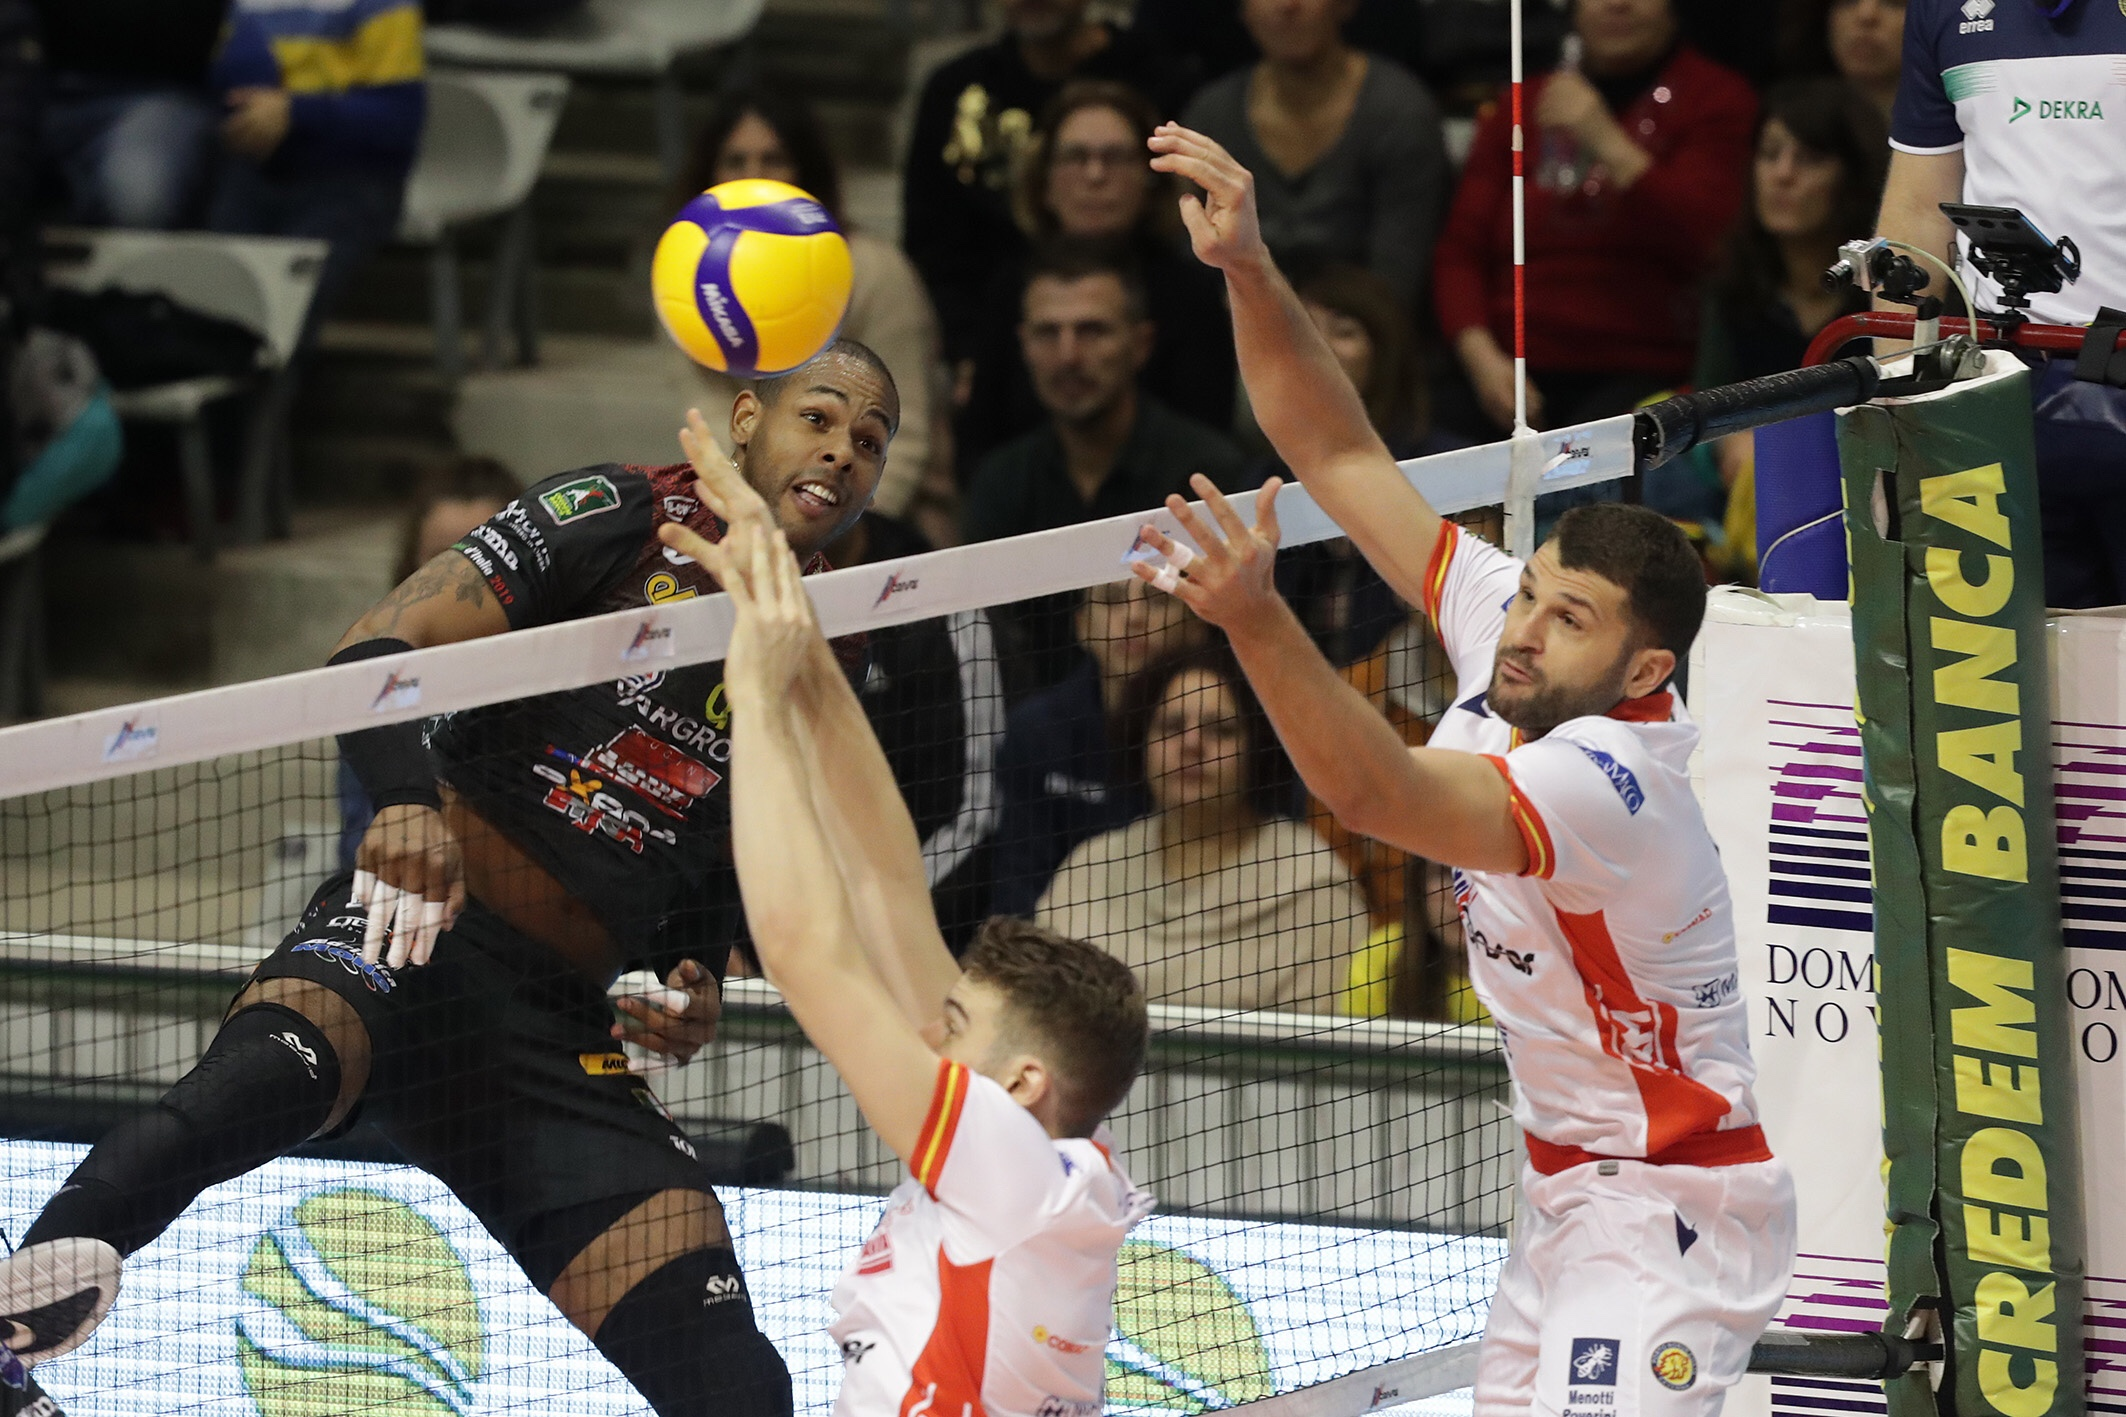 Italy: Lube win again, but Consar Ravenna take two sets